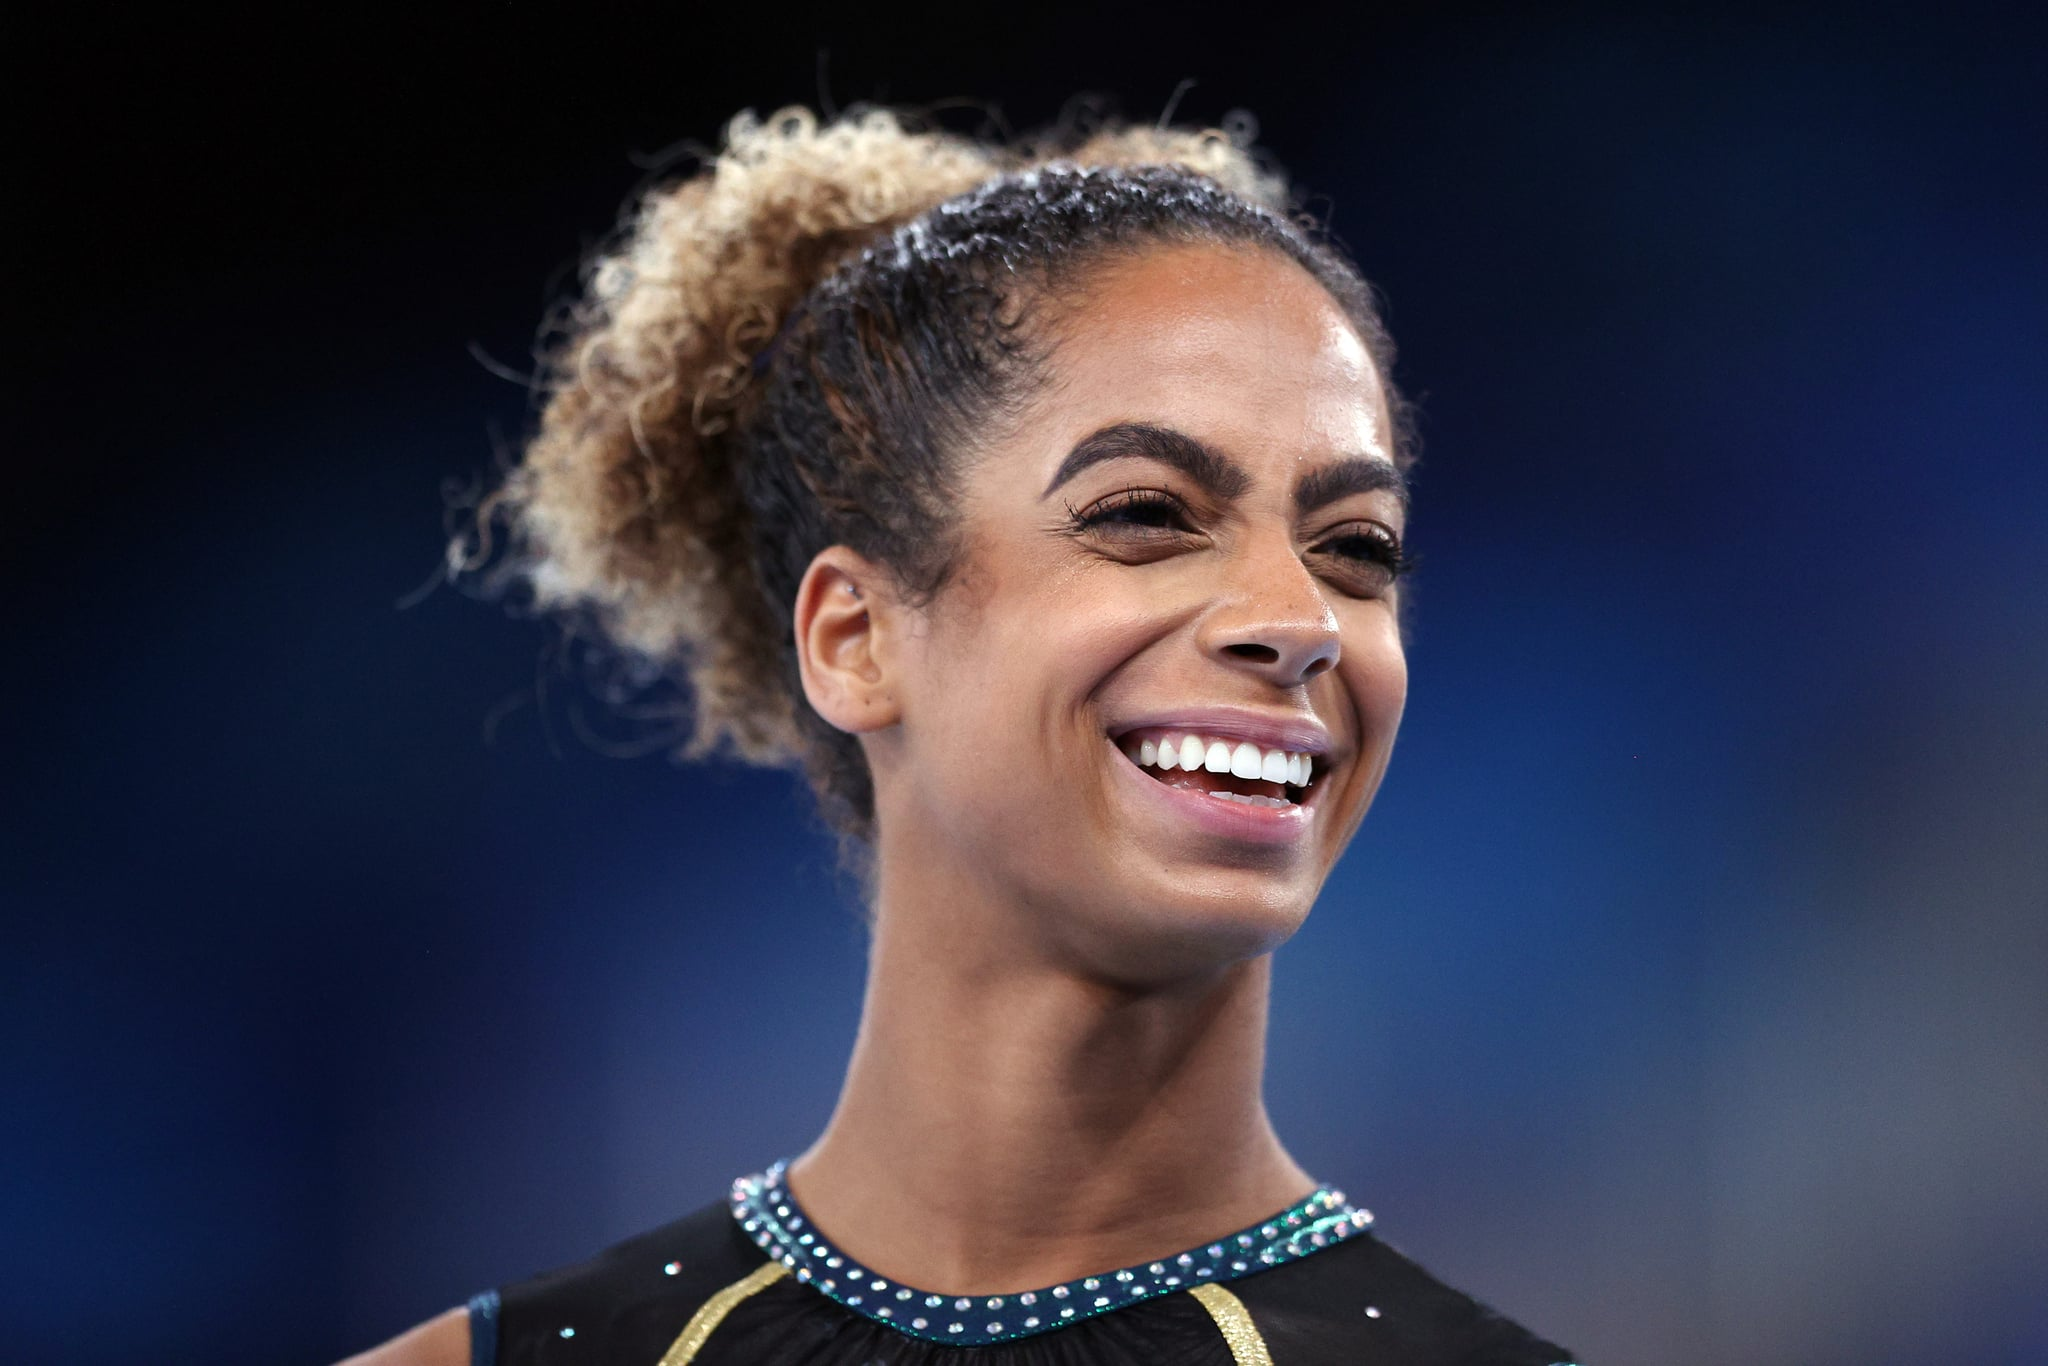 TOKYO, JAPAN - JULY 22: Danusia Francis of Team Jamaica smiles during Women's Podium Training ahead of the Tokyo 2020 Olympic Games at Ariake Gymnastics Centre on July 22, 2021 in Tokyo, Japan. (Photo by Patrick Smith/Getty Images)